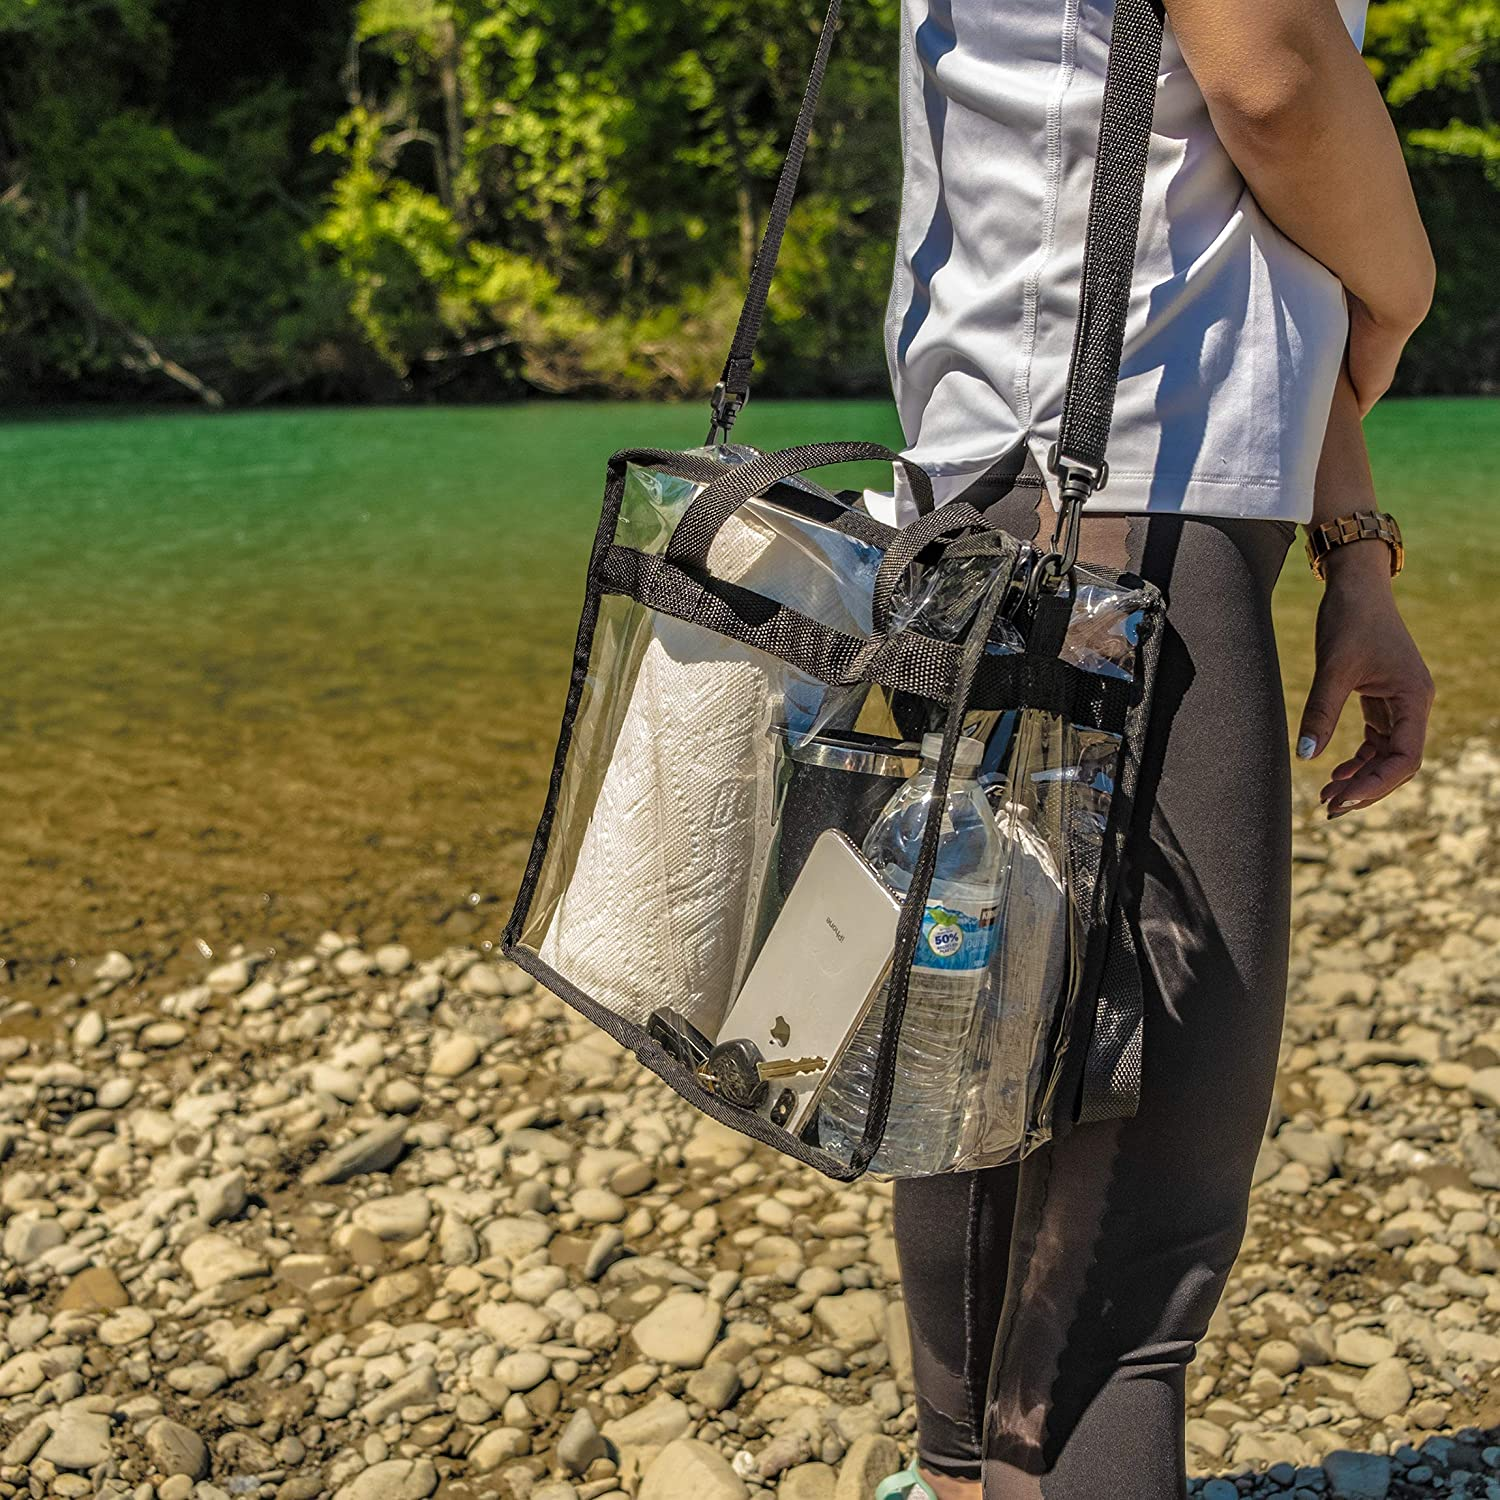 """Zuess Premium Clear Stadium Approved Bag Clear Tote Bag with Cross Body Messenger Adjustable Shoulder Strap-12/"""" X 12/"""" X 6/"""""""